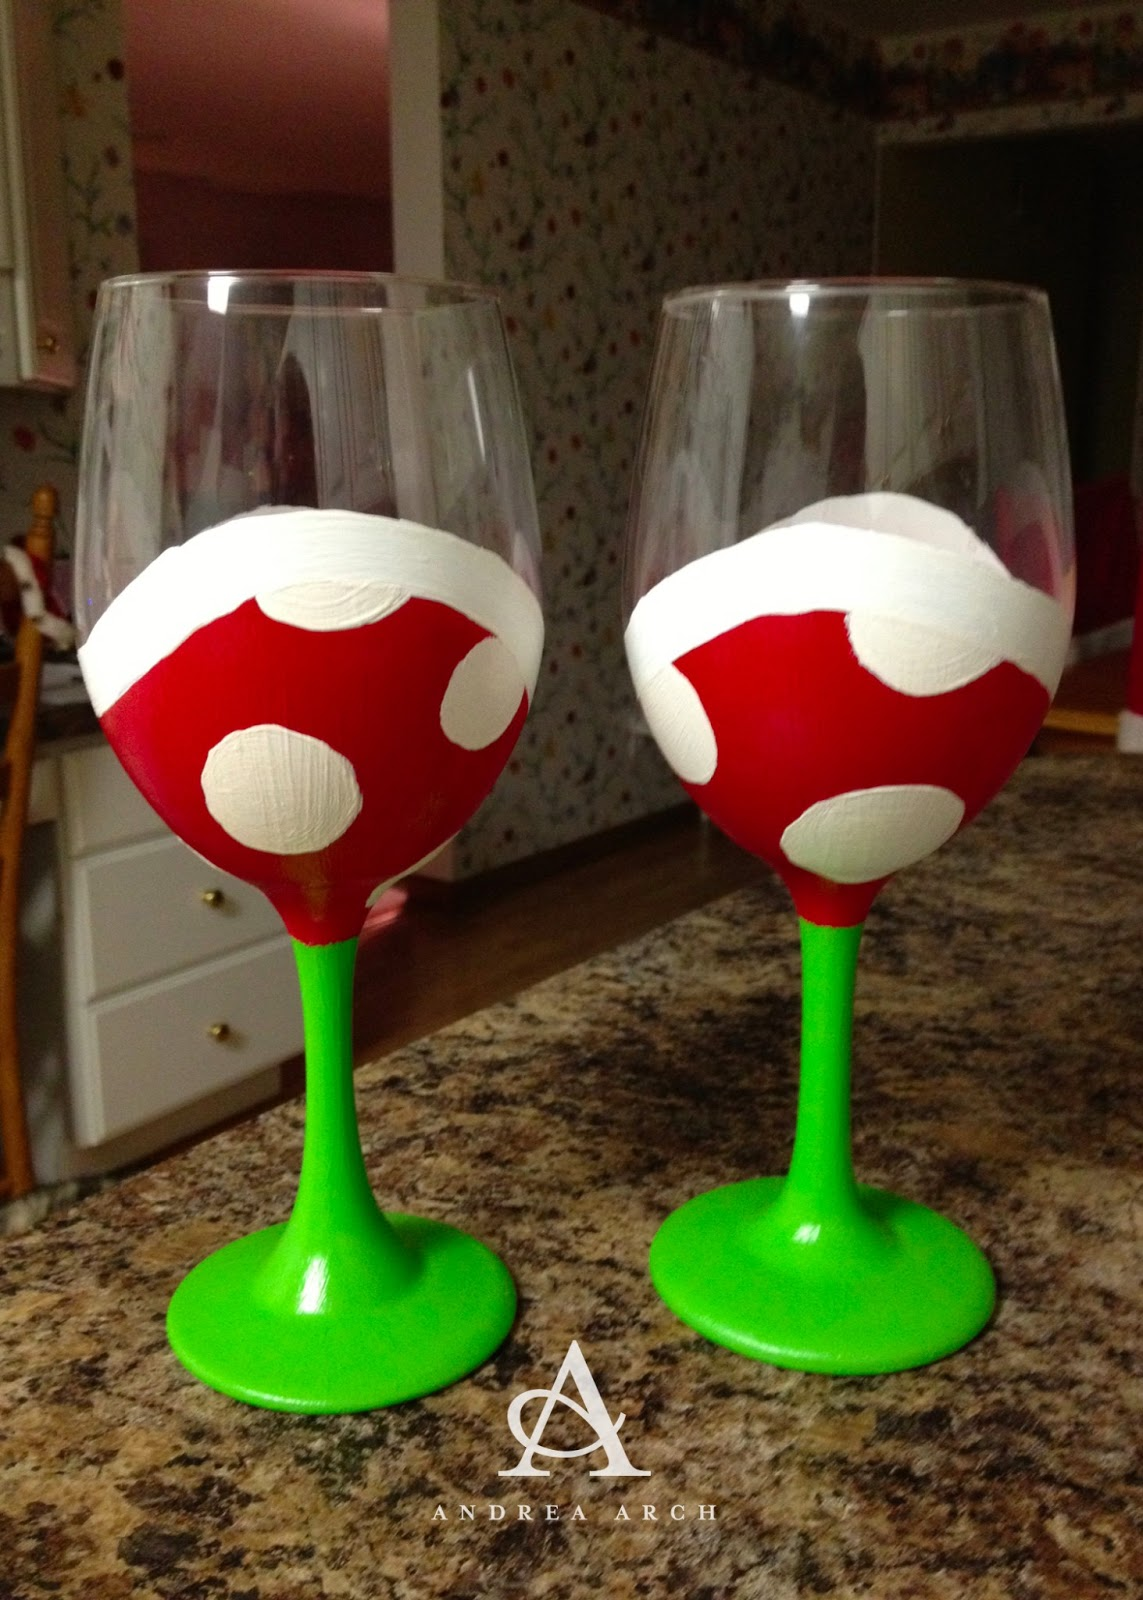 Andrea arch diy mario piranha plant wine glasses for How to paint a wine glass with acrylics